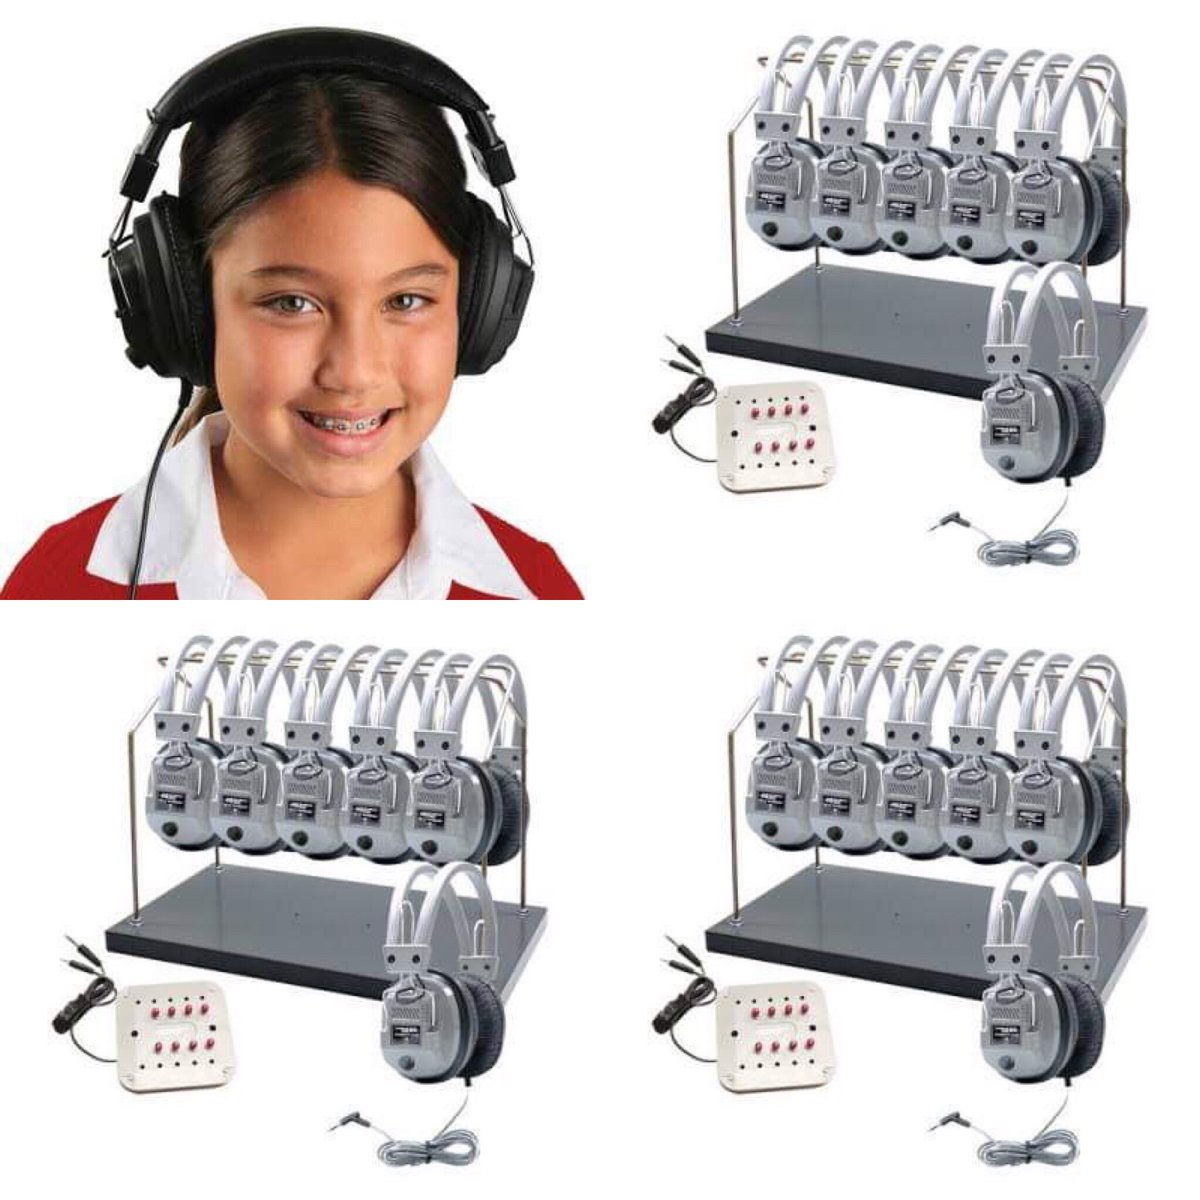 Attn : #teachers! Build listening and speech skills with #Hamiltonbuhl #listening #centers Engage students and keep them focused!😎 Call 866 926 1669 https://t.co/ZltaYuP212  #encoredataproducts #education #headphones #TELPAS #PARCC #library #STEMDirector #curriculumdirector https://t.co/o1D6nRZuDr